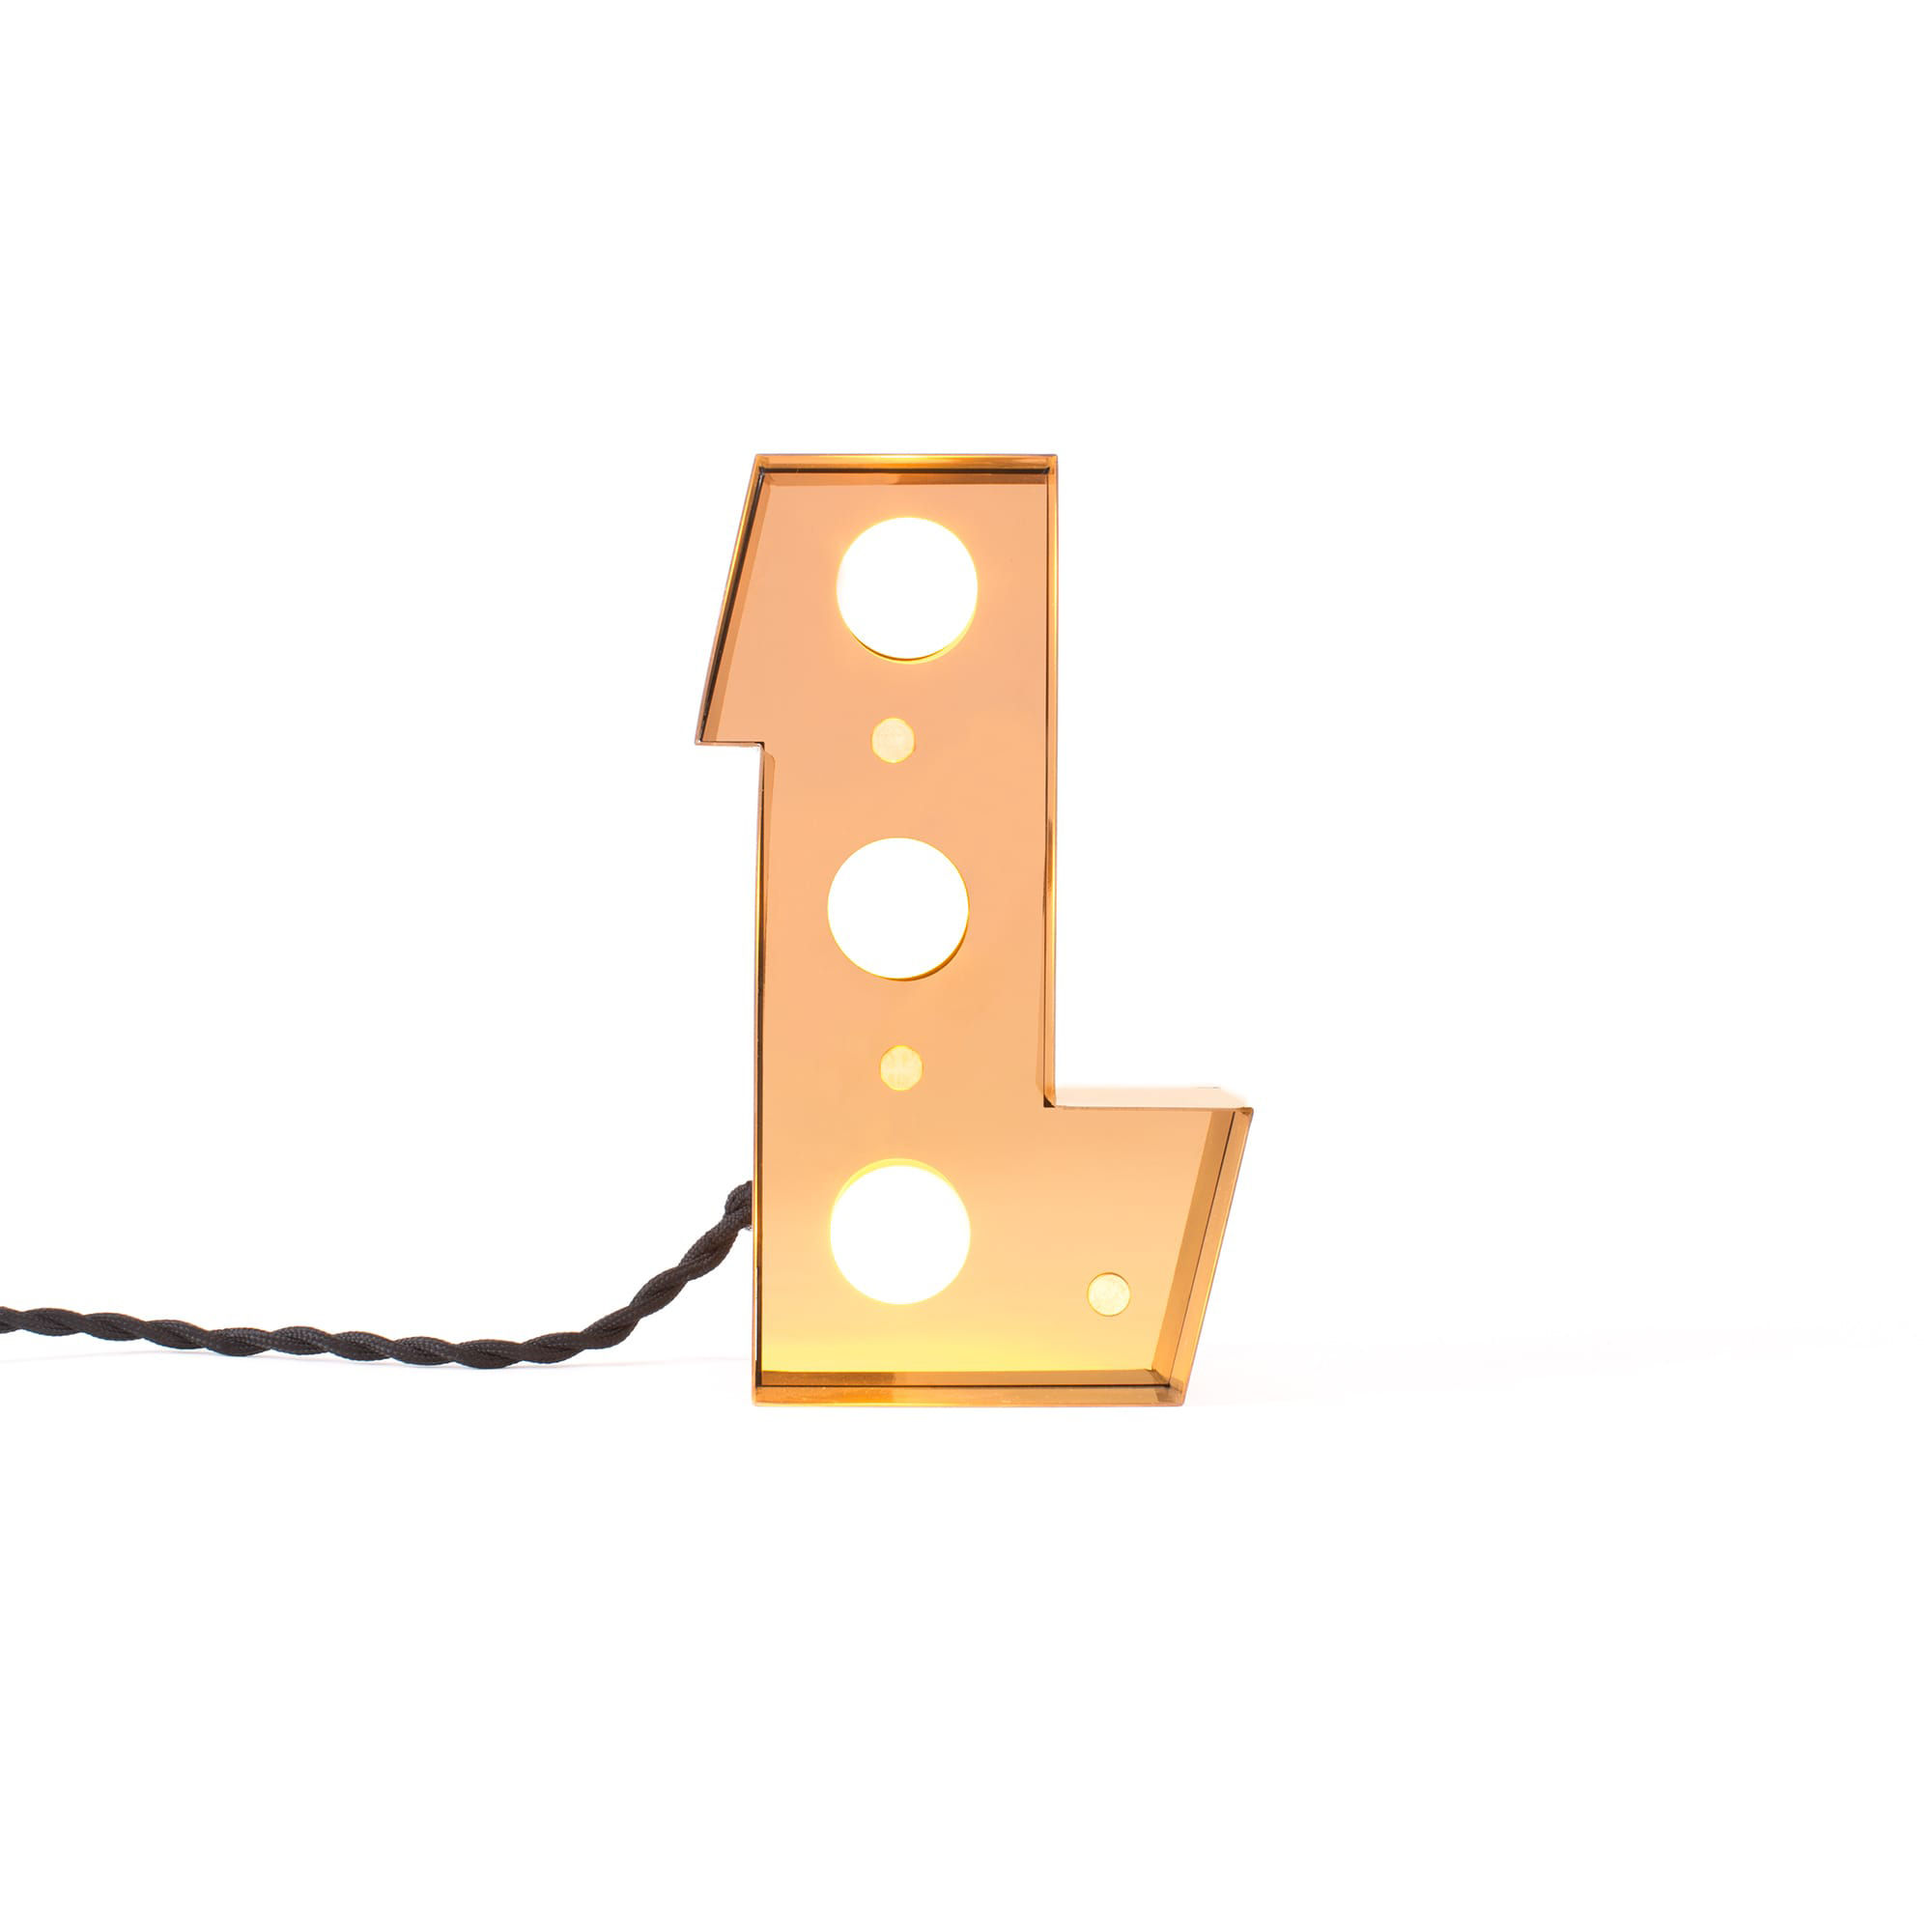 Decoration - Children's Home Accessories - Caractère Table lamp - / Wall light - Letter L - H 20 cm by Seletti - L - Lacquered metal